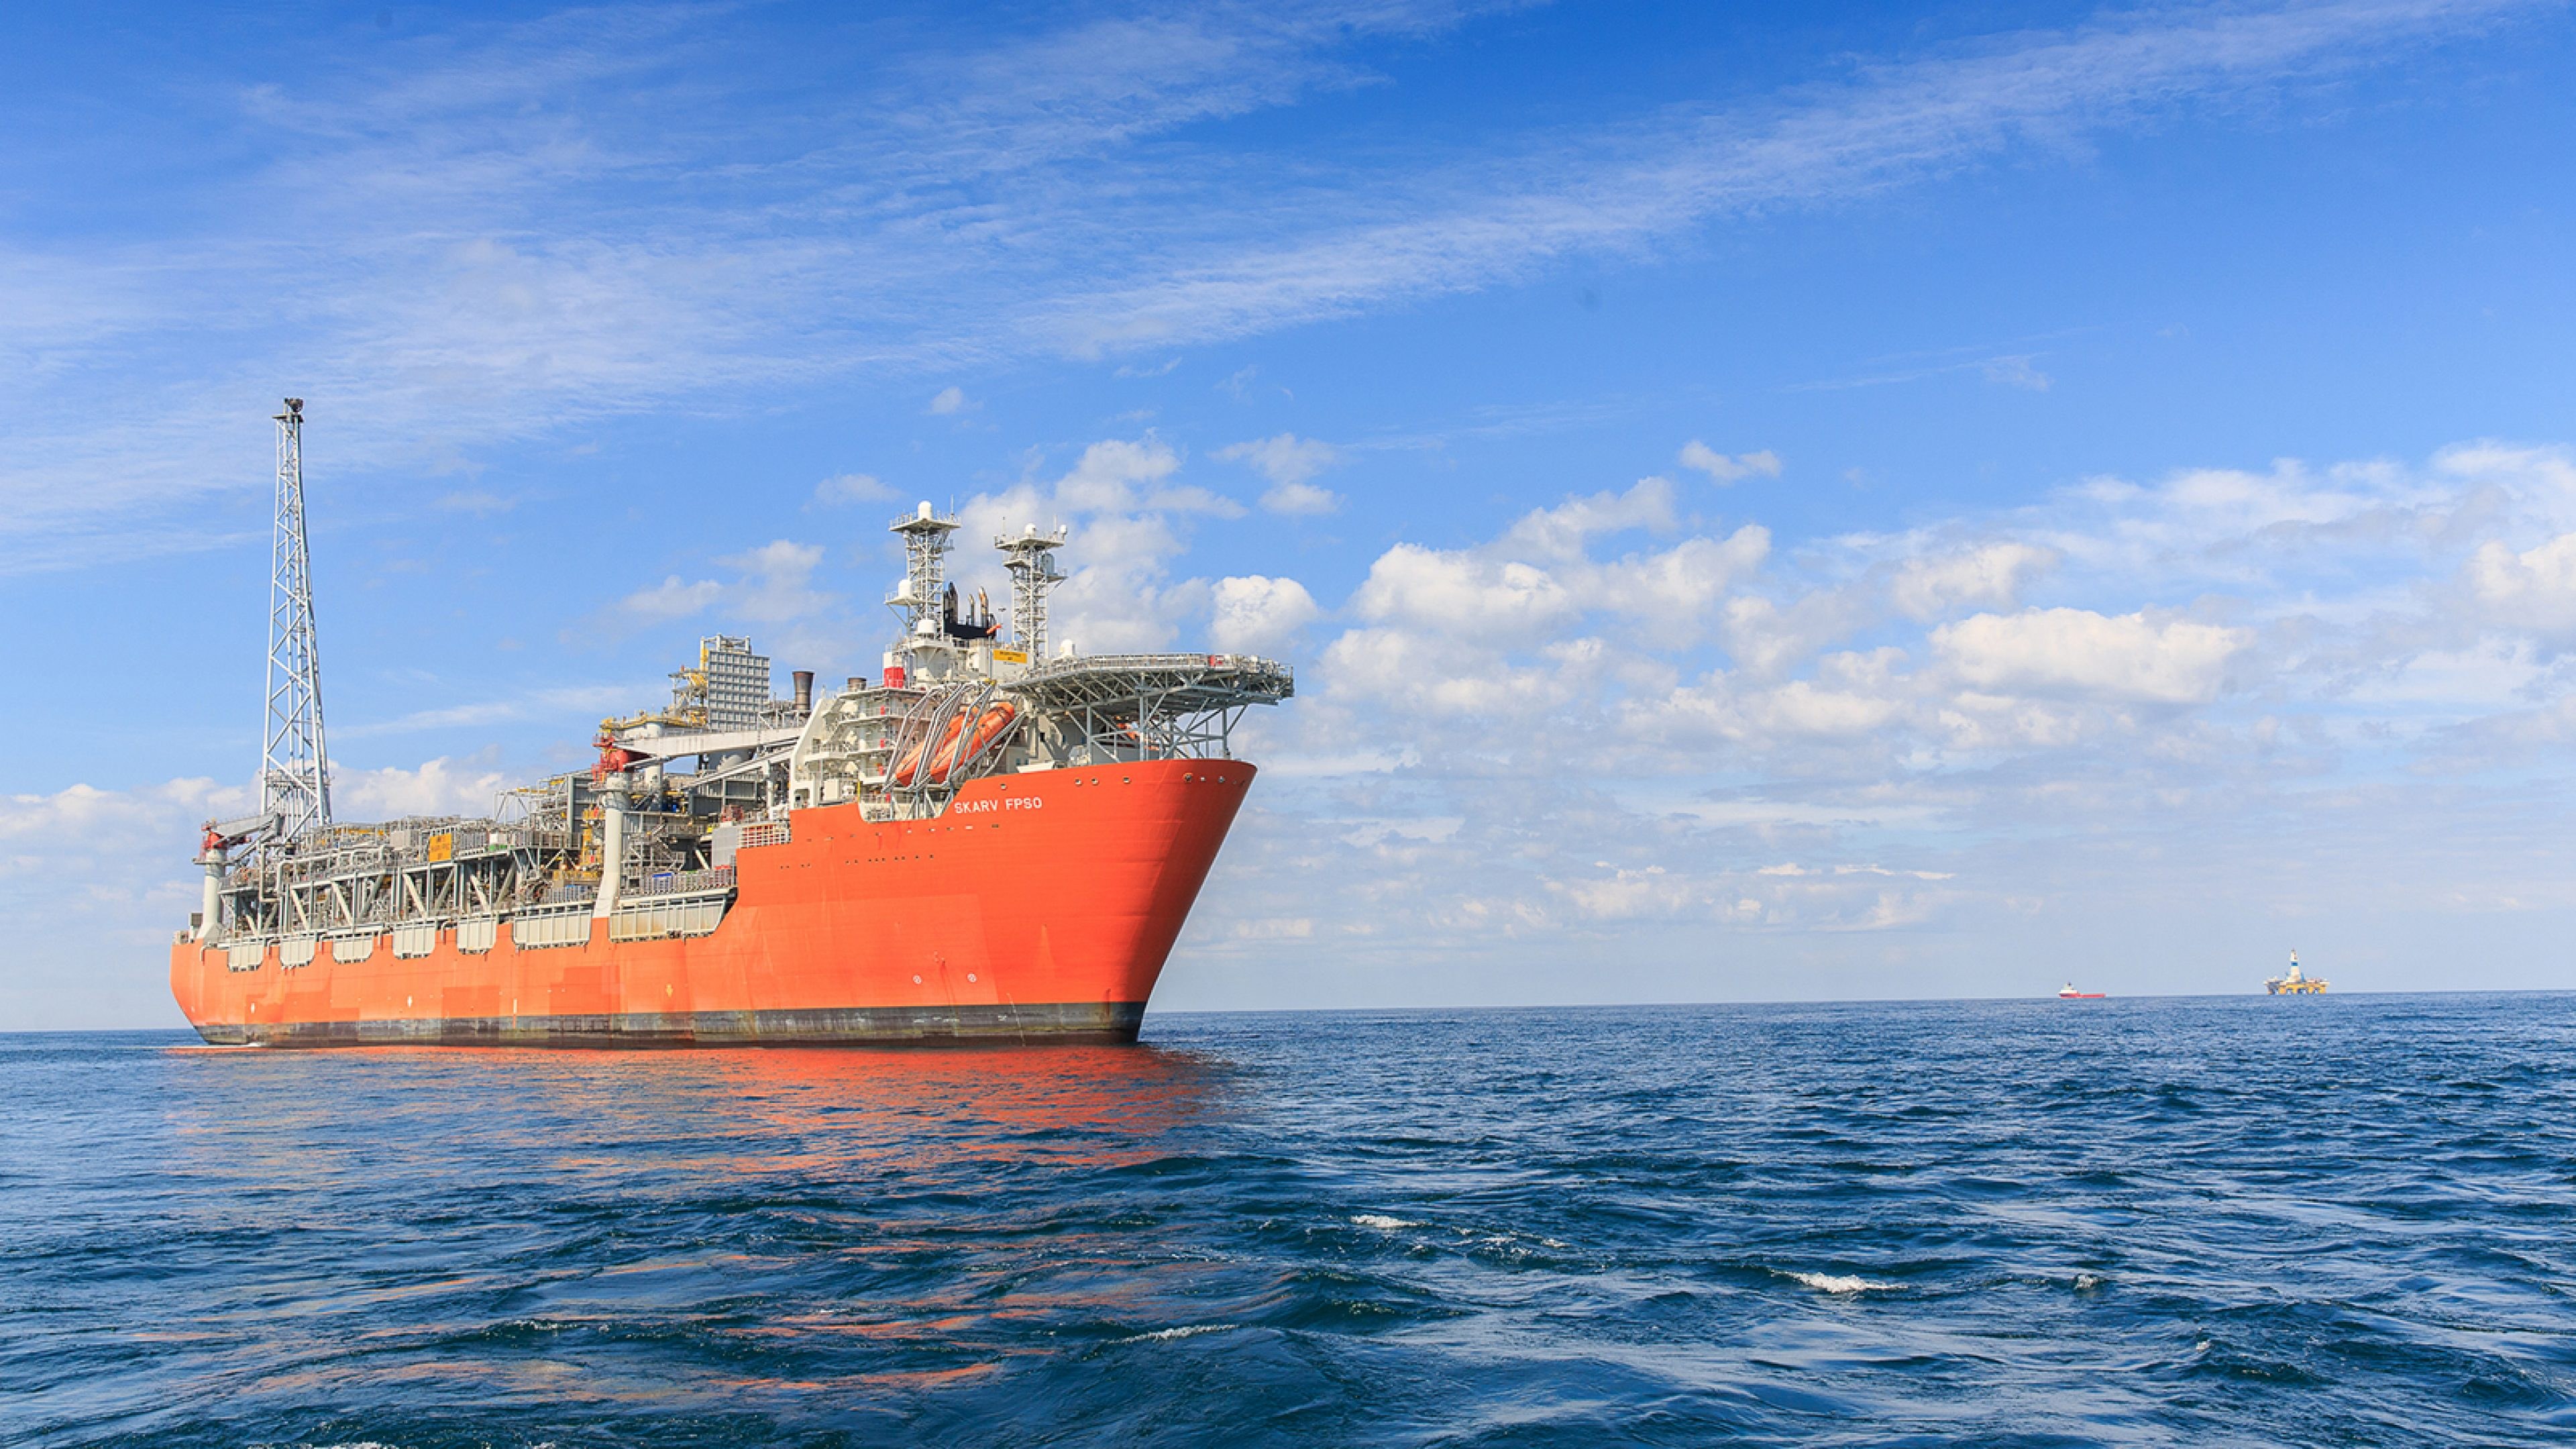 Floating production, storage and offloading vessel at sea